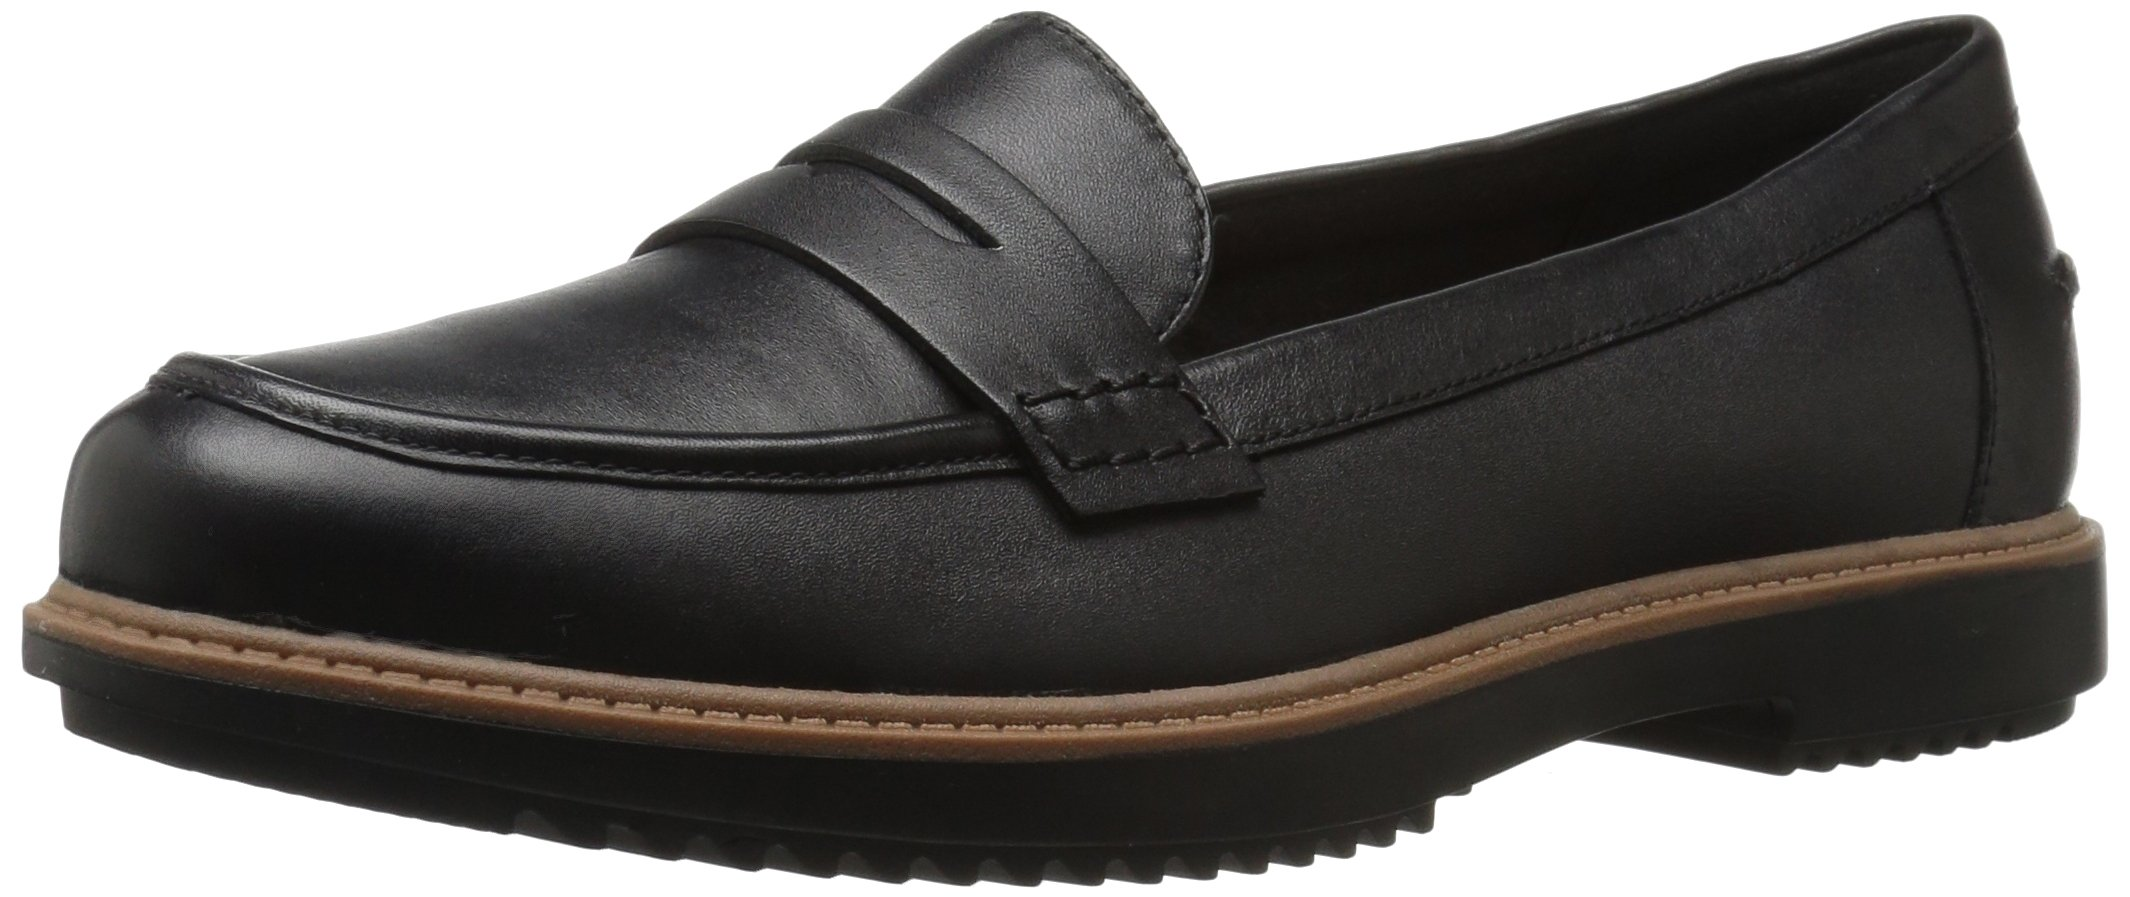 Clarks Women's Raisie Eletta Penny Loafer, Black Leather, 7 M US